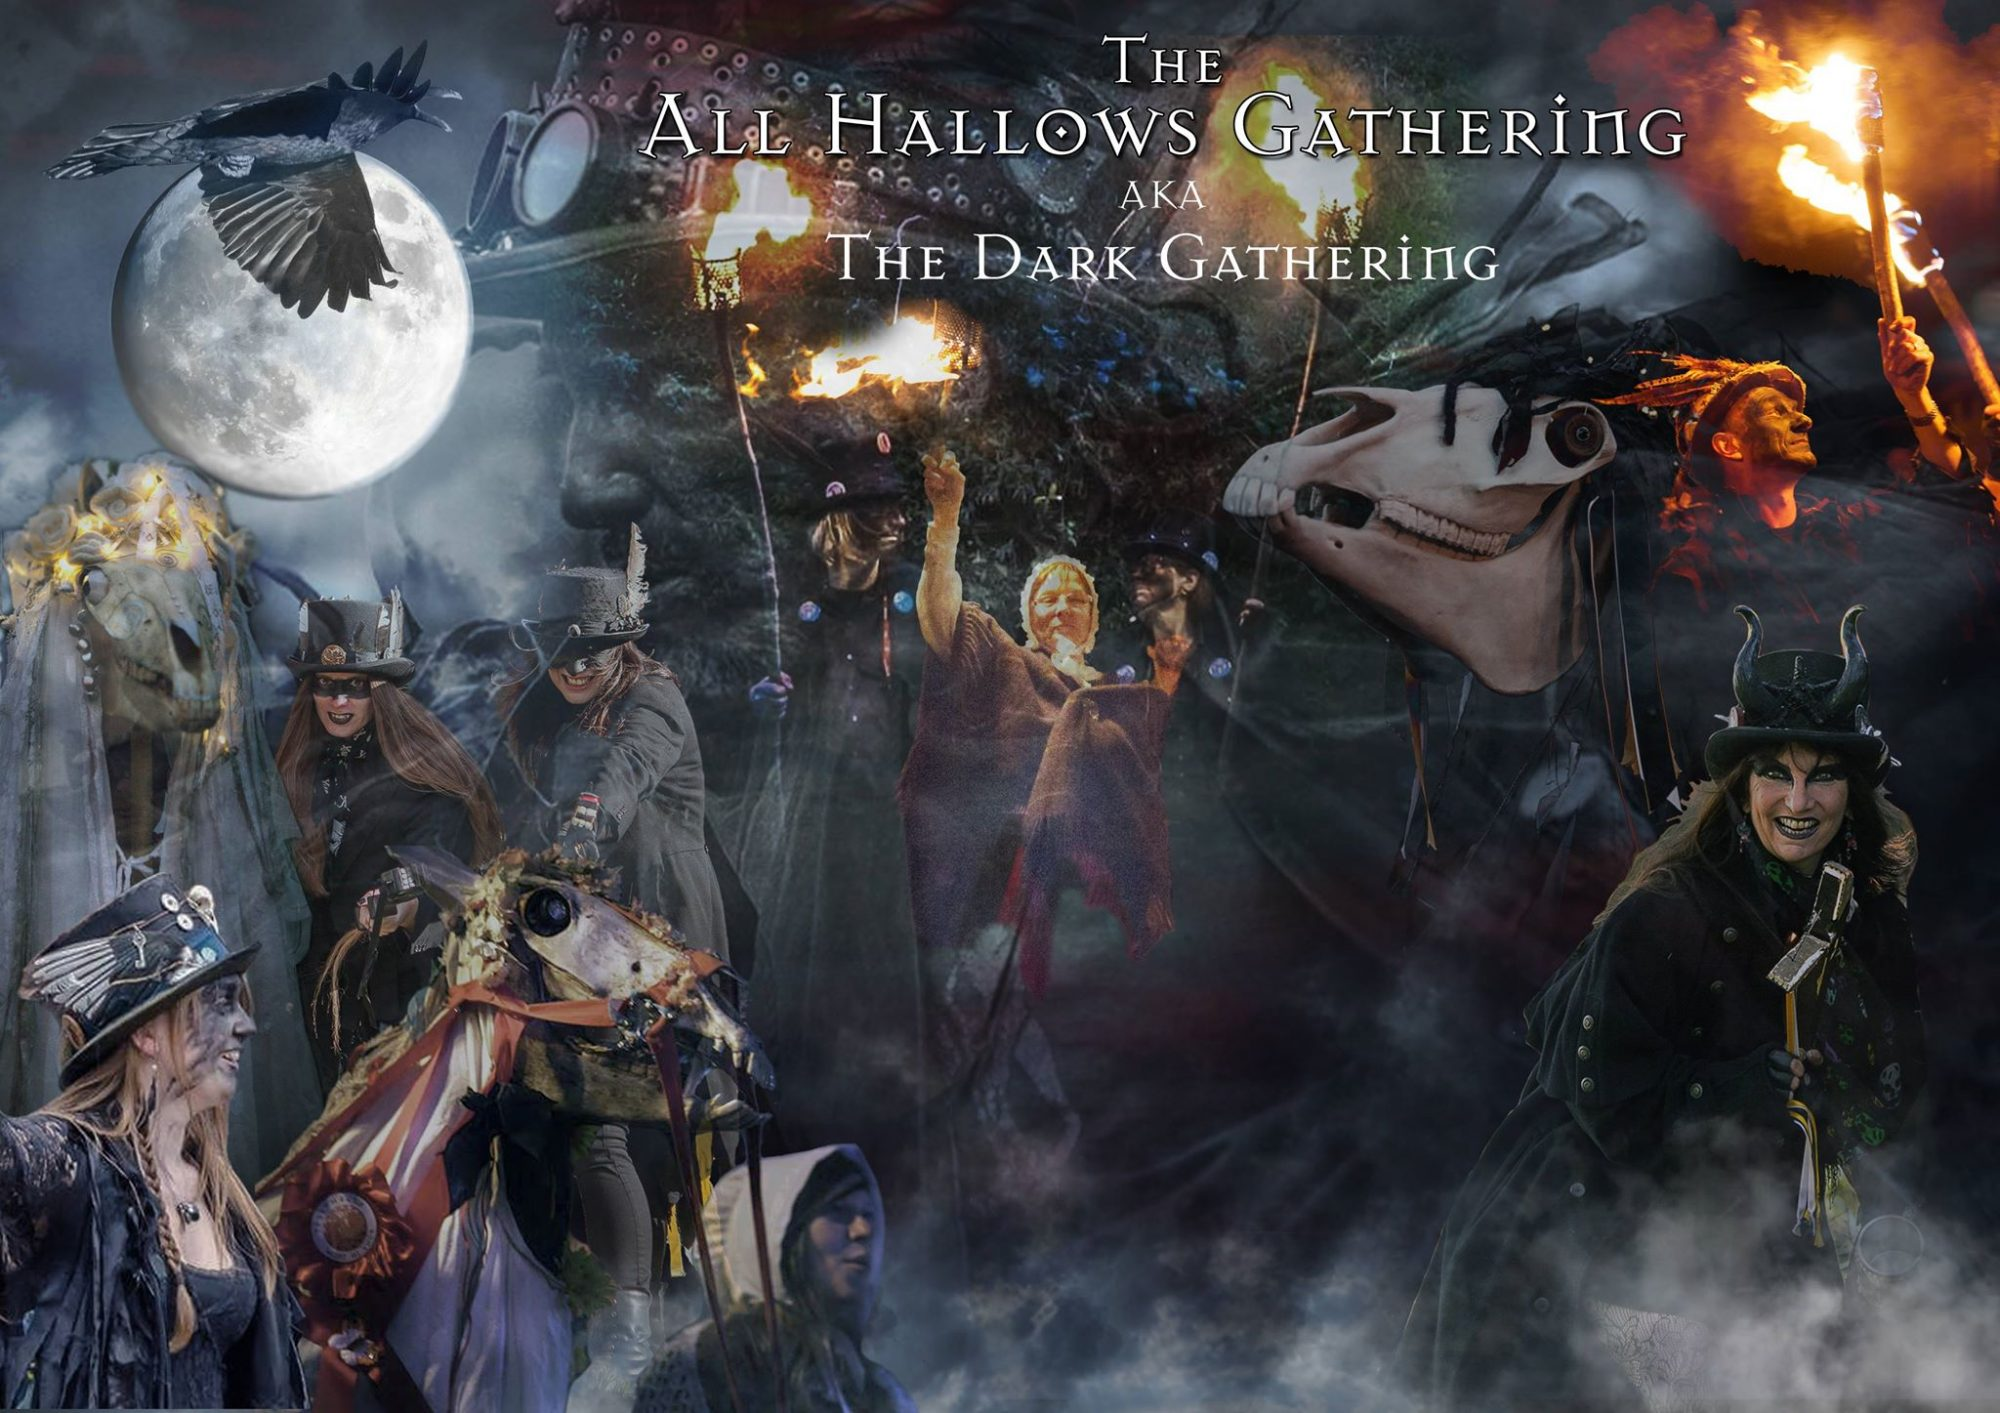 All Hallows Gathering